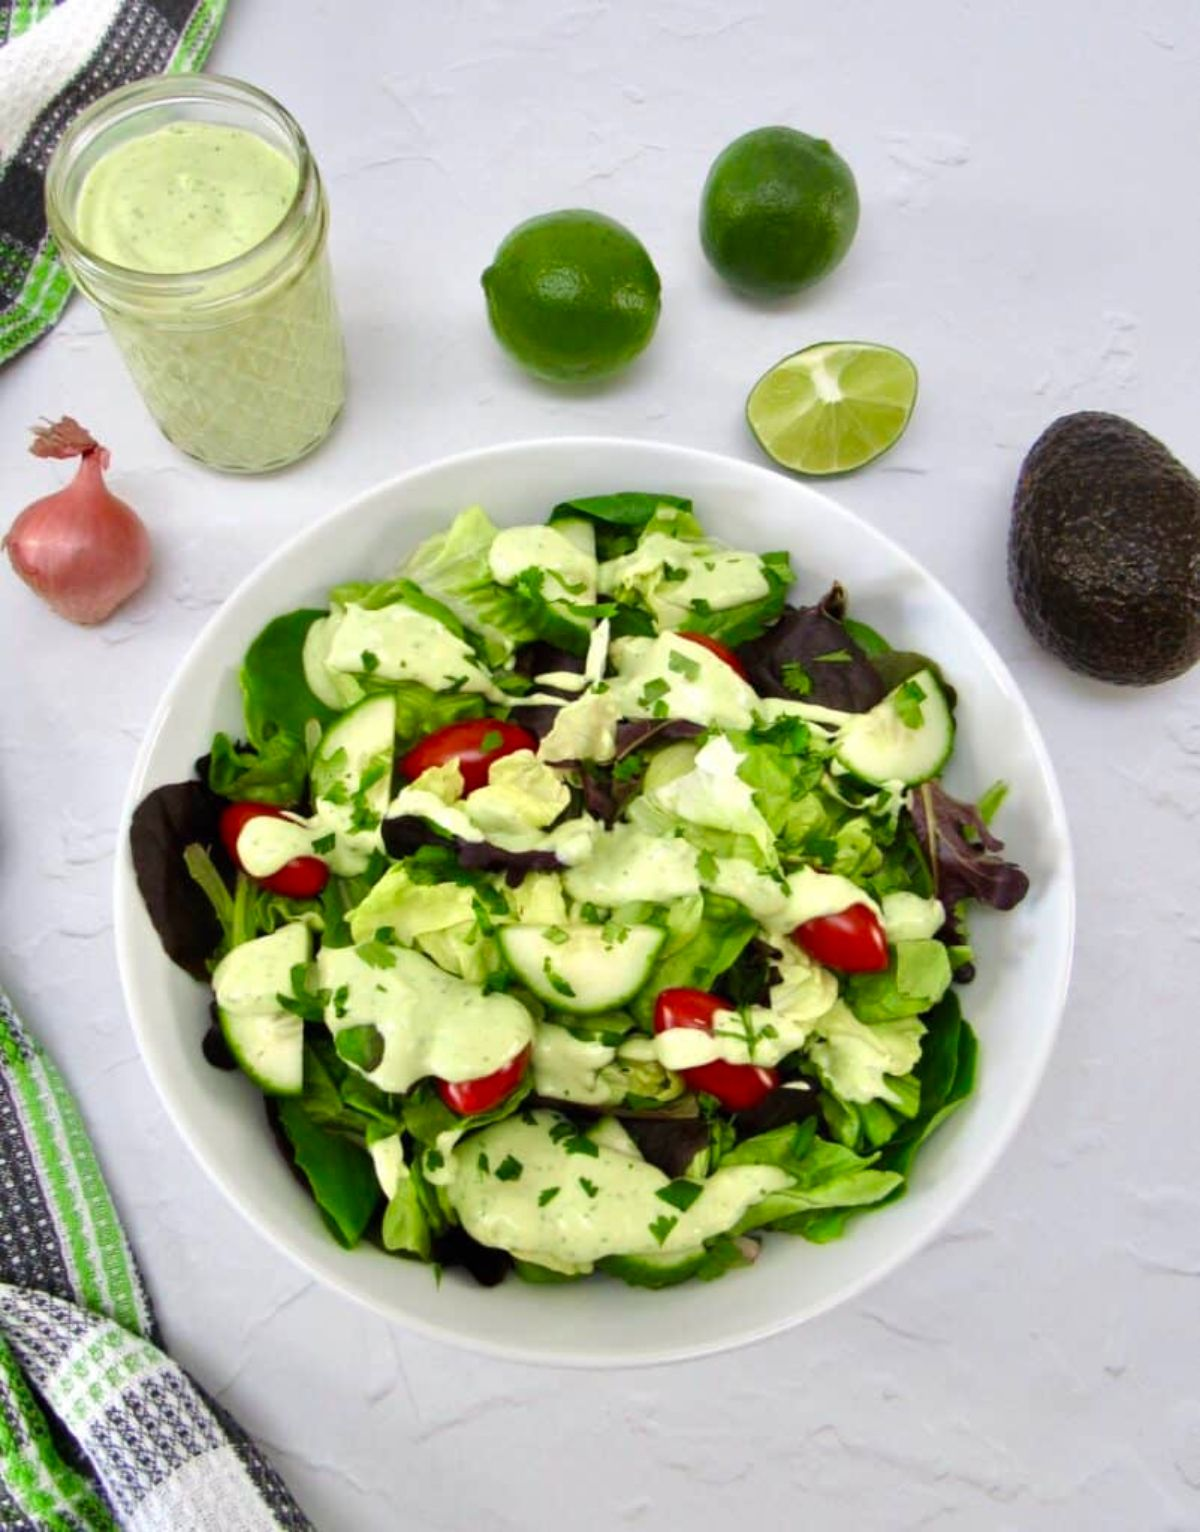 On a white marble countertop is a white round bowl with a green salad, drizzled with green dressing. Around the bowl is a glass jar of dressing, limes and lime wedges, a shallot, and an avocado